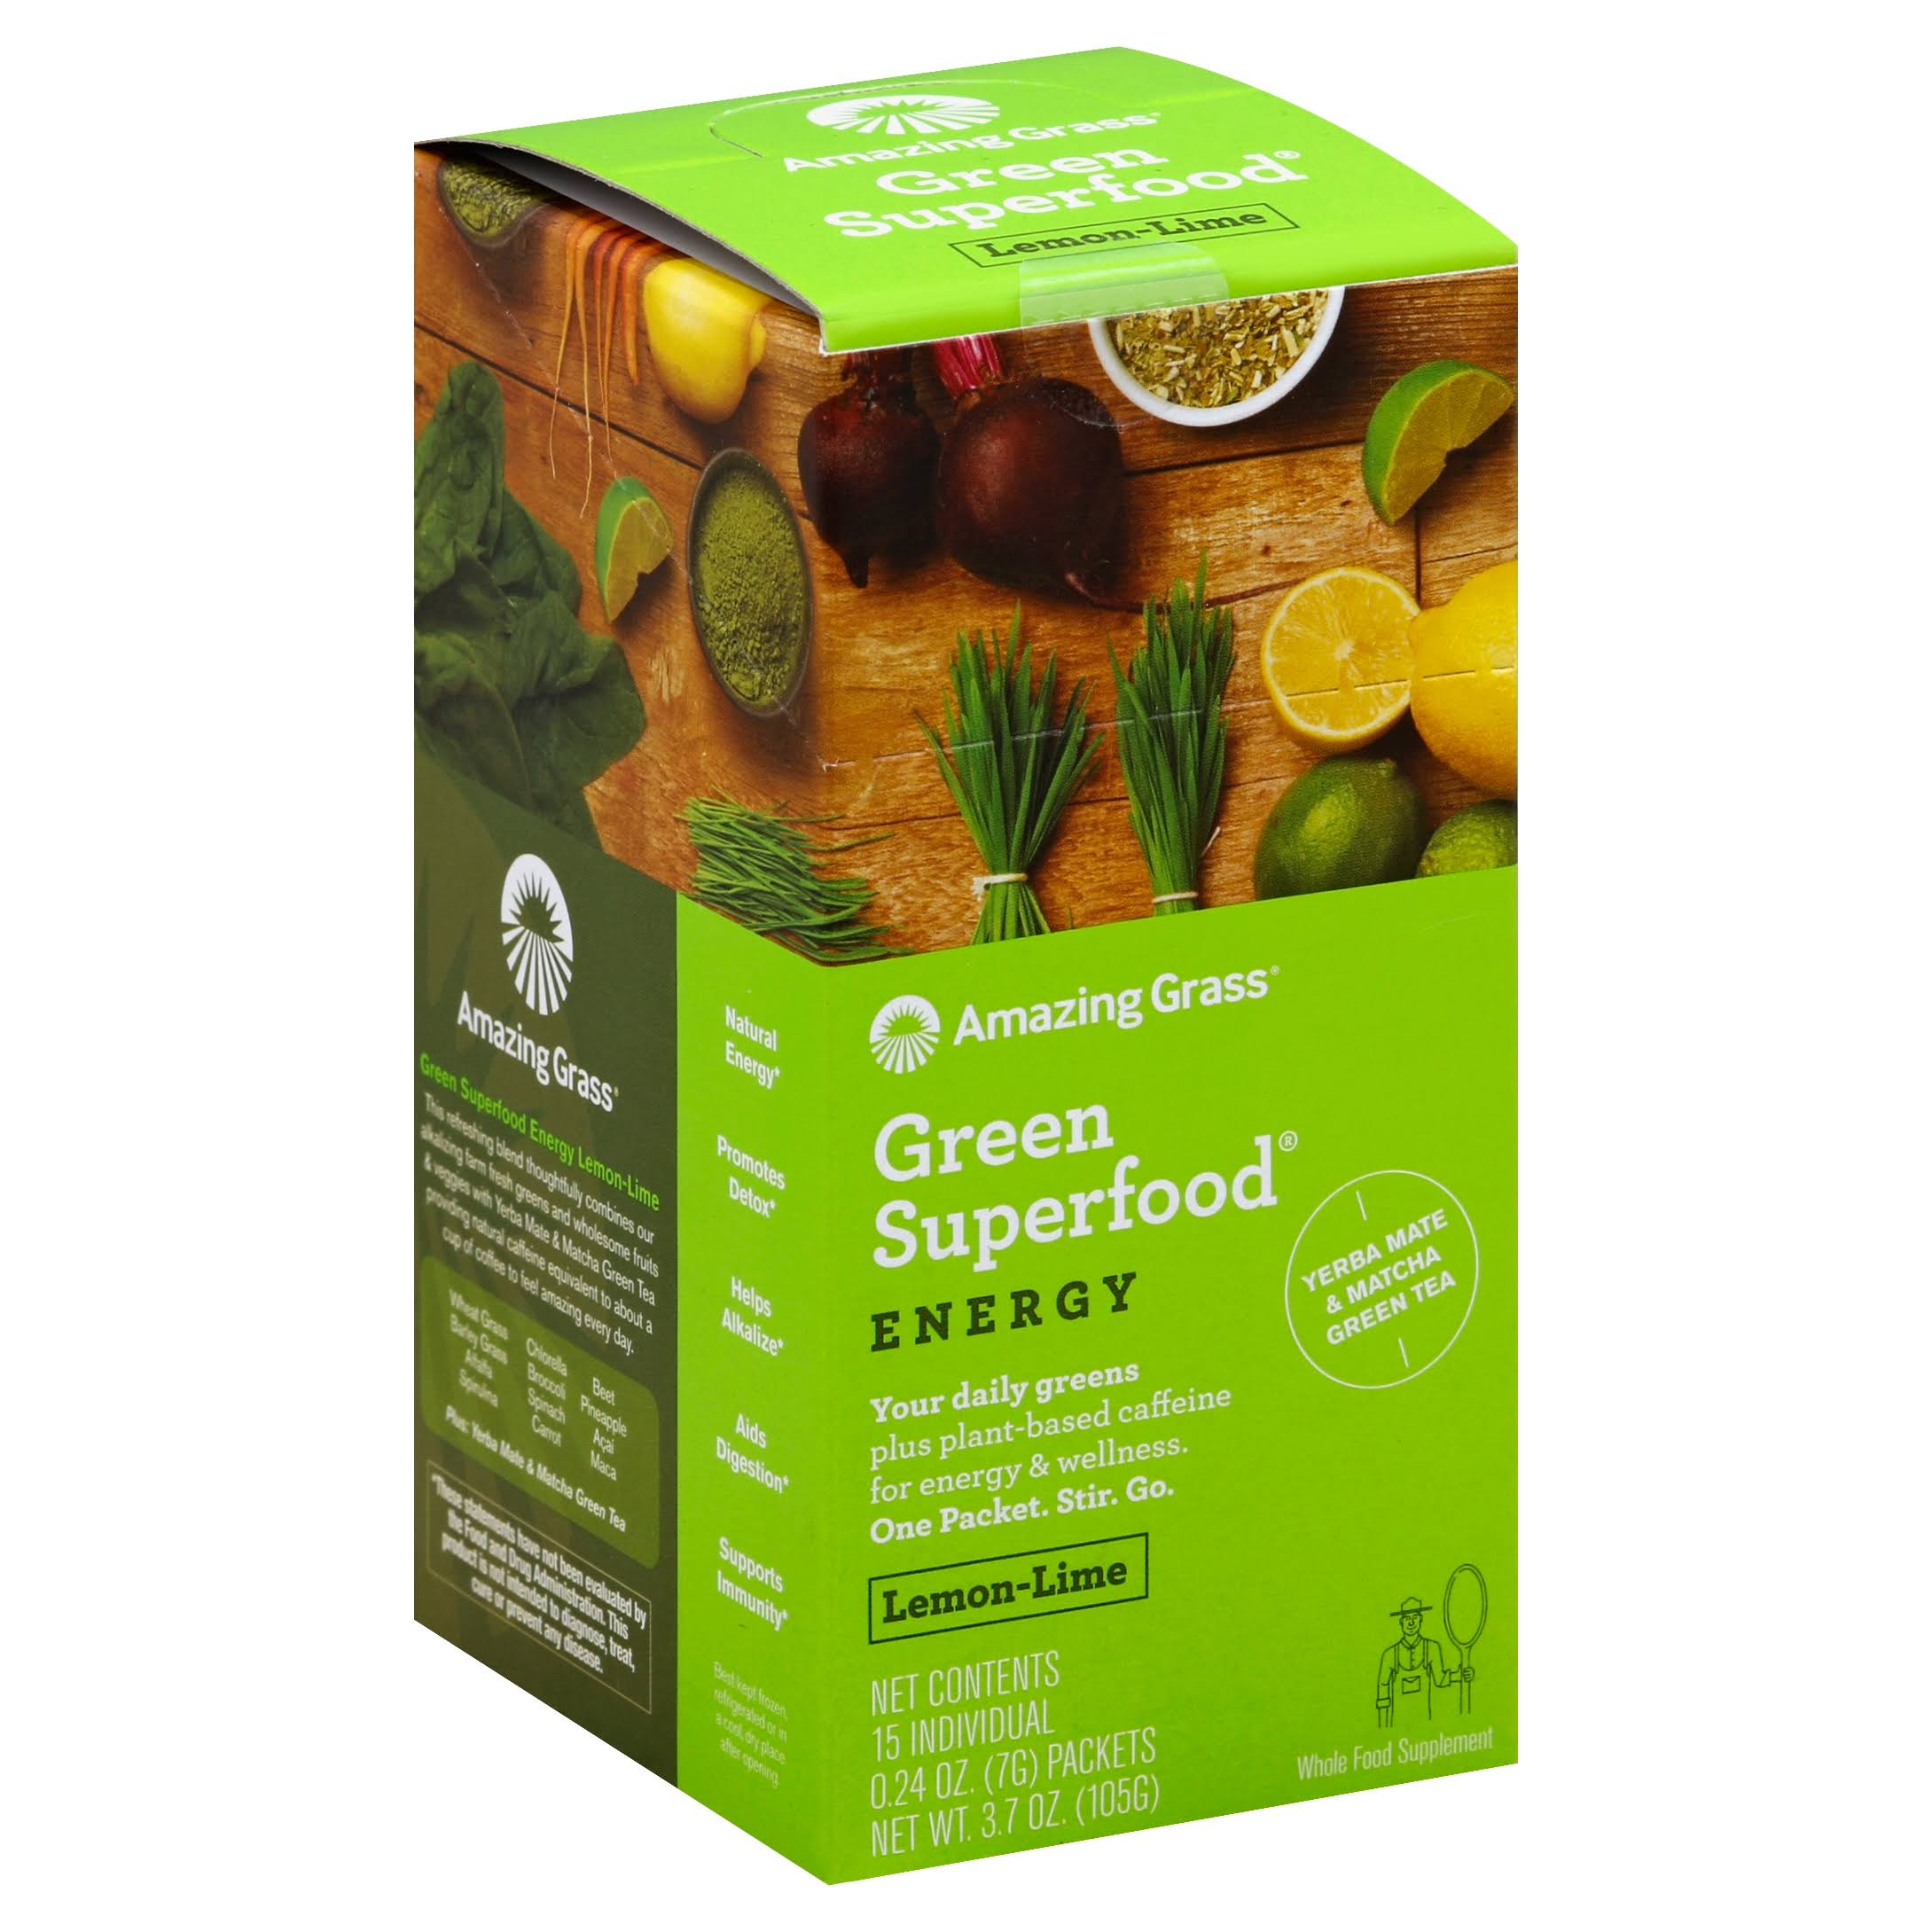 Amazing Grass Energy Green Superfood Powder - Lemon Lime, 15ct